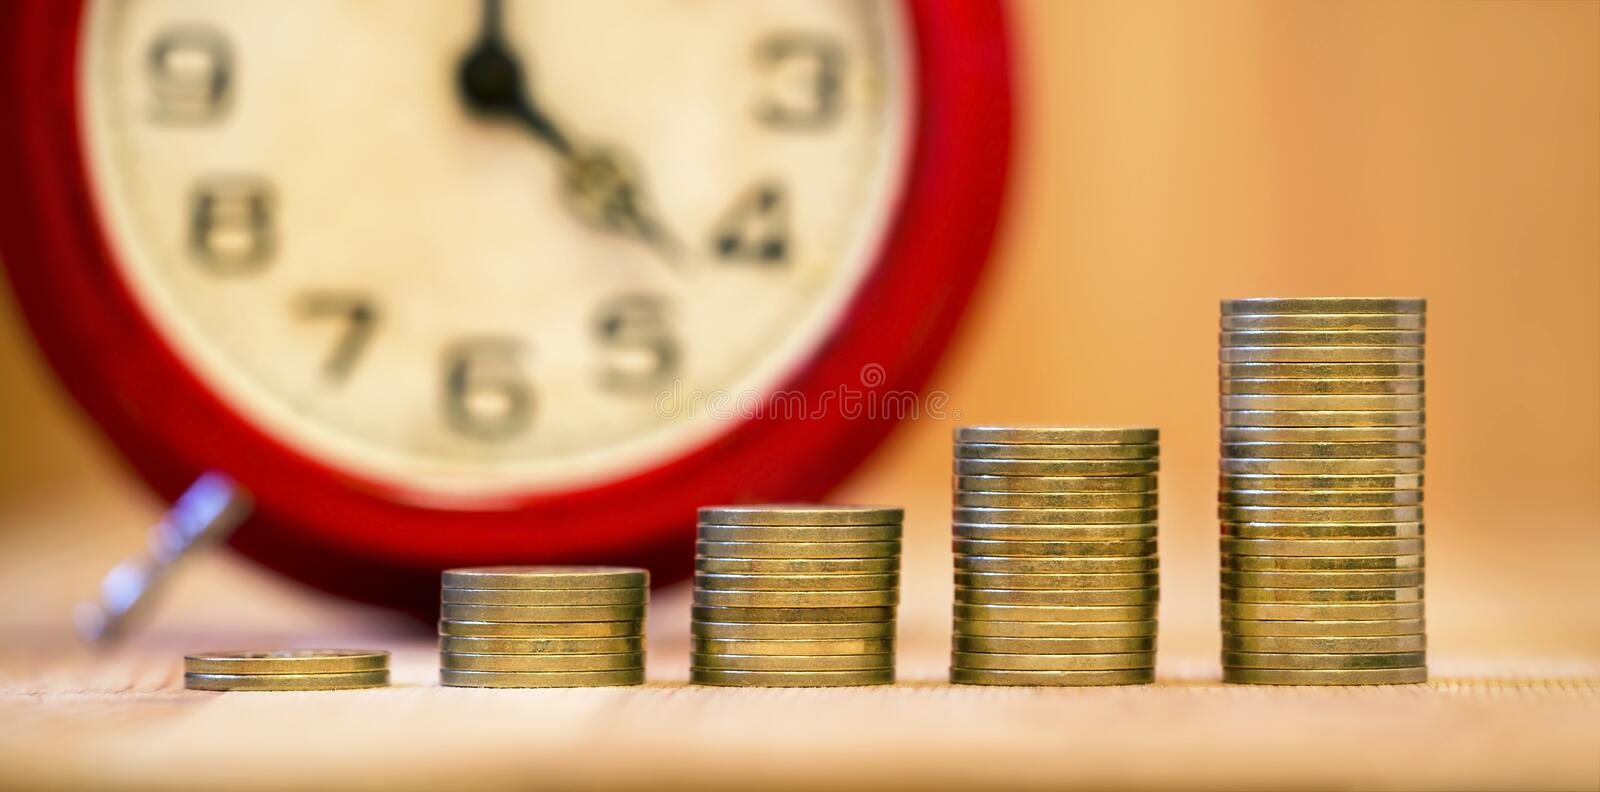 Alarm clock and money coins royalty free stock photography